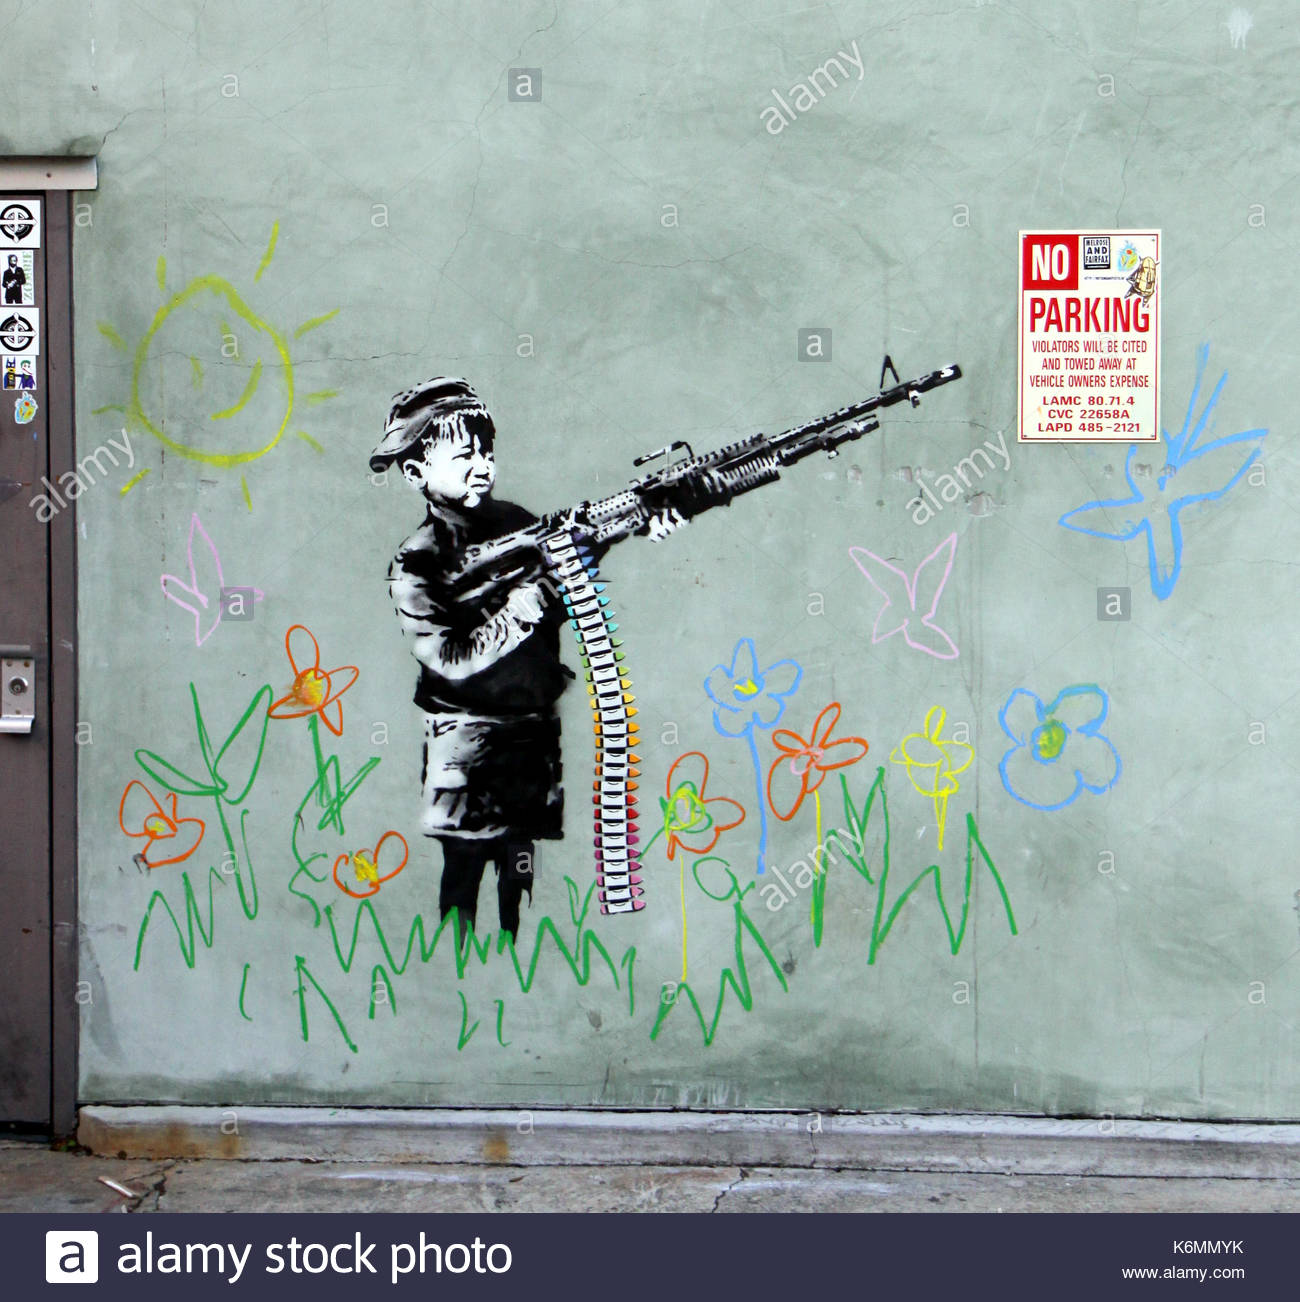 Graffiti Artist Banksy Is In Los Angeles For The Oscars As Three New Pieces Spring Up Overnight The Guerilla Graffiti Artist Whos Film Exit Through